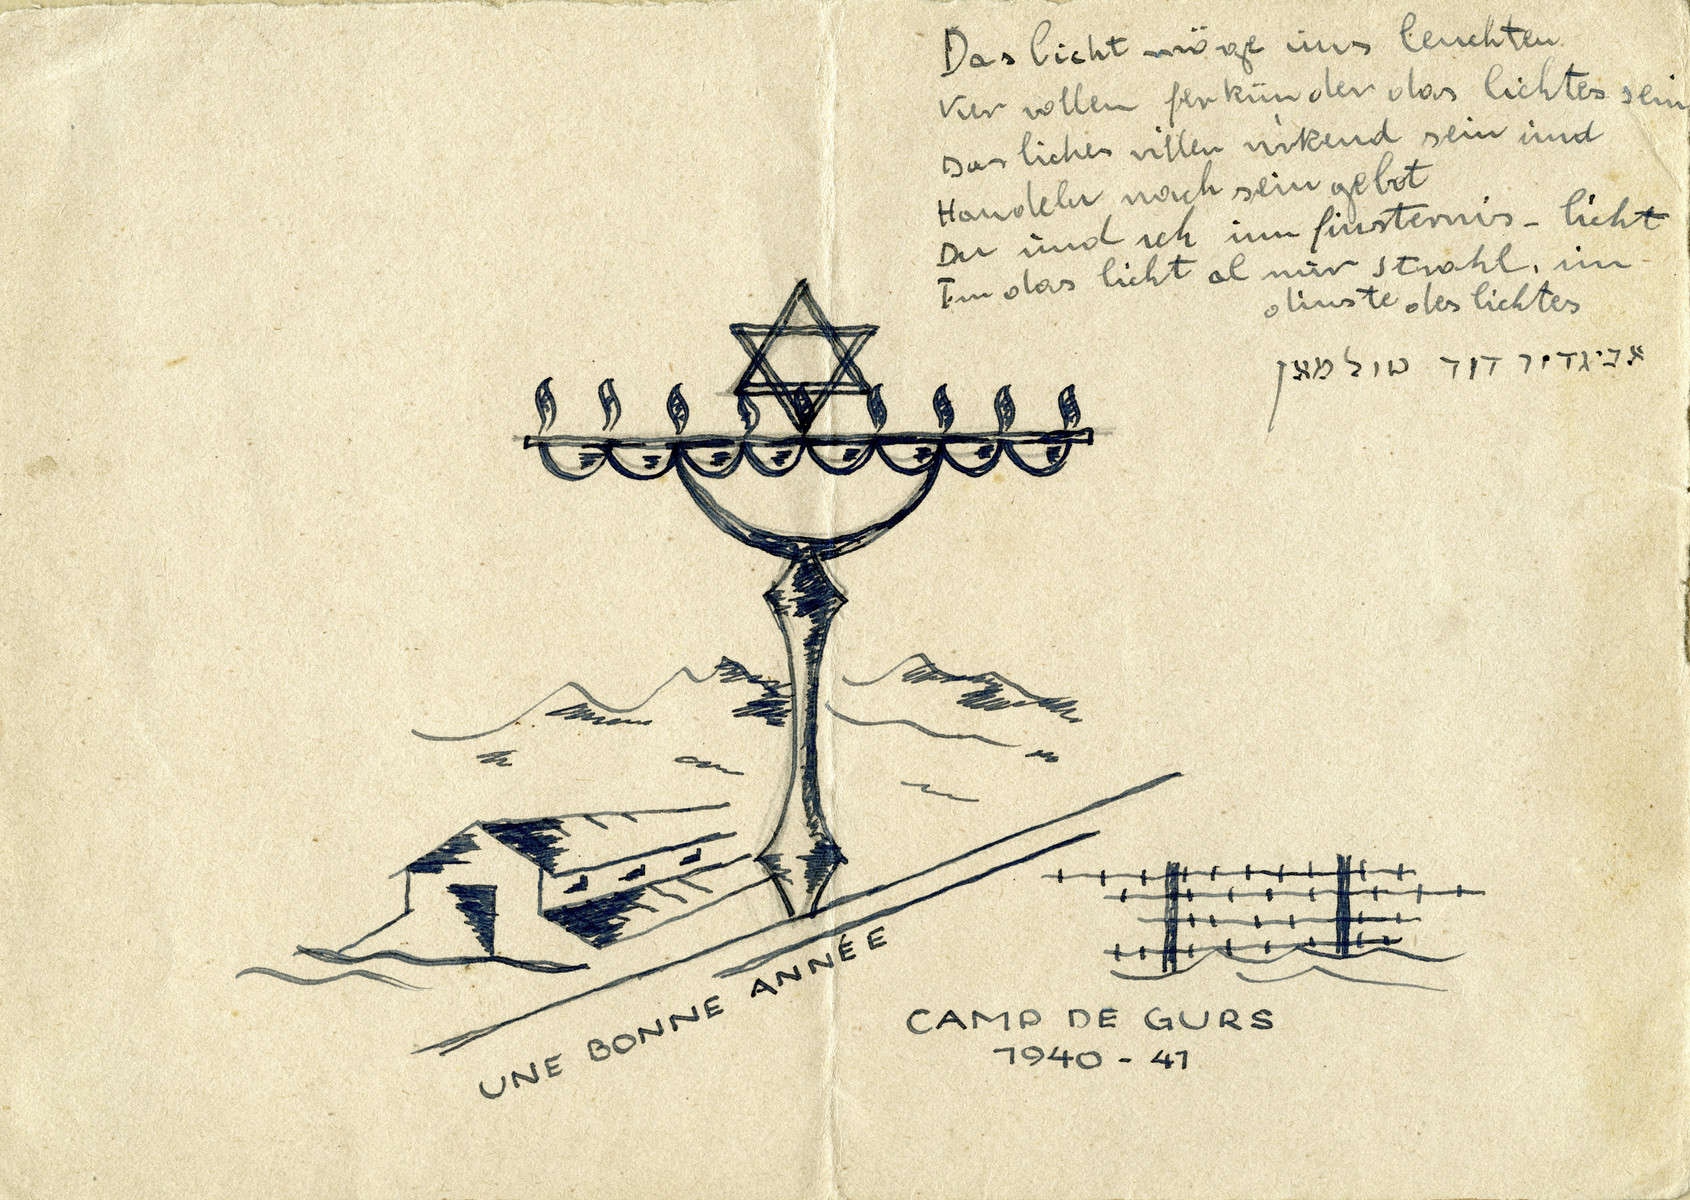 Engagement notice sent by Victor Tulman and Hella Bacmeister, internees in Gurs.  The menorah symbolizes their desire to bring light to the earth.